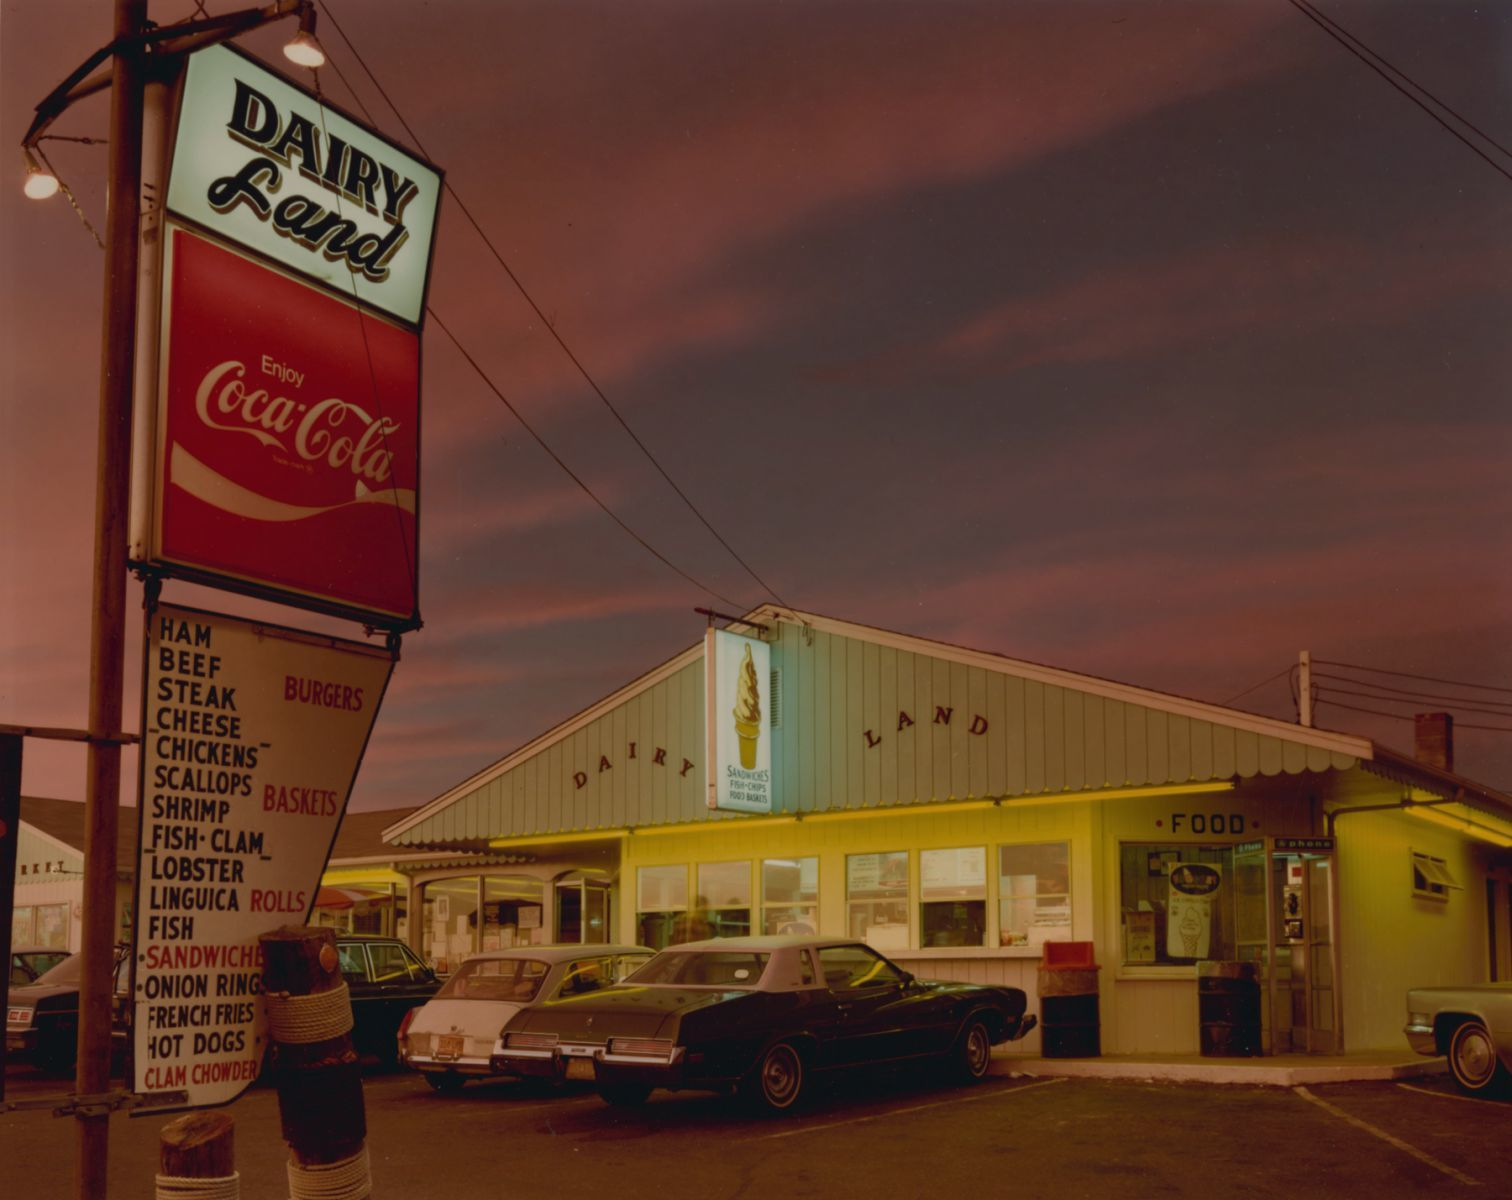 Photo by Joel Meyerowitz - Via: flipboard.com